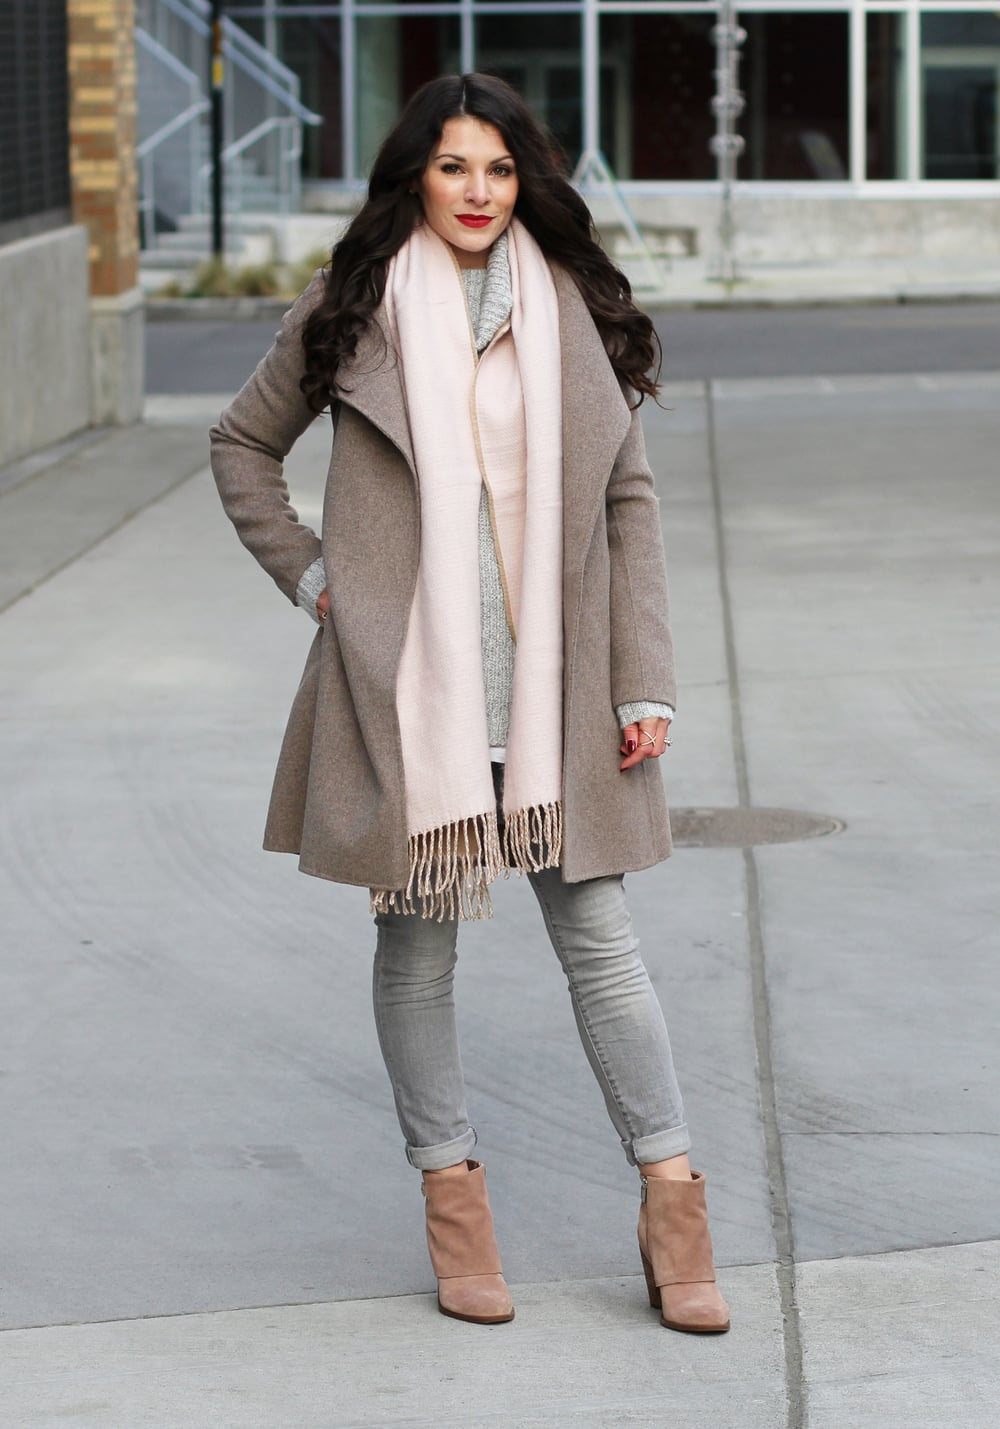 Gray Outfit, Groutfit, Winter Outfit, Forever 21 Ribbed Turtleneck Sweater, Gap Skinny Jeans, Jessica Simpson Nude Suede Booties, Blush Pink Scarf, Banana Republic Belted Wrap Coat